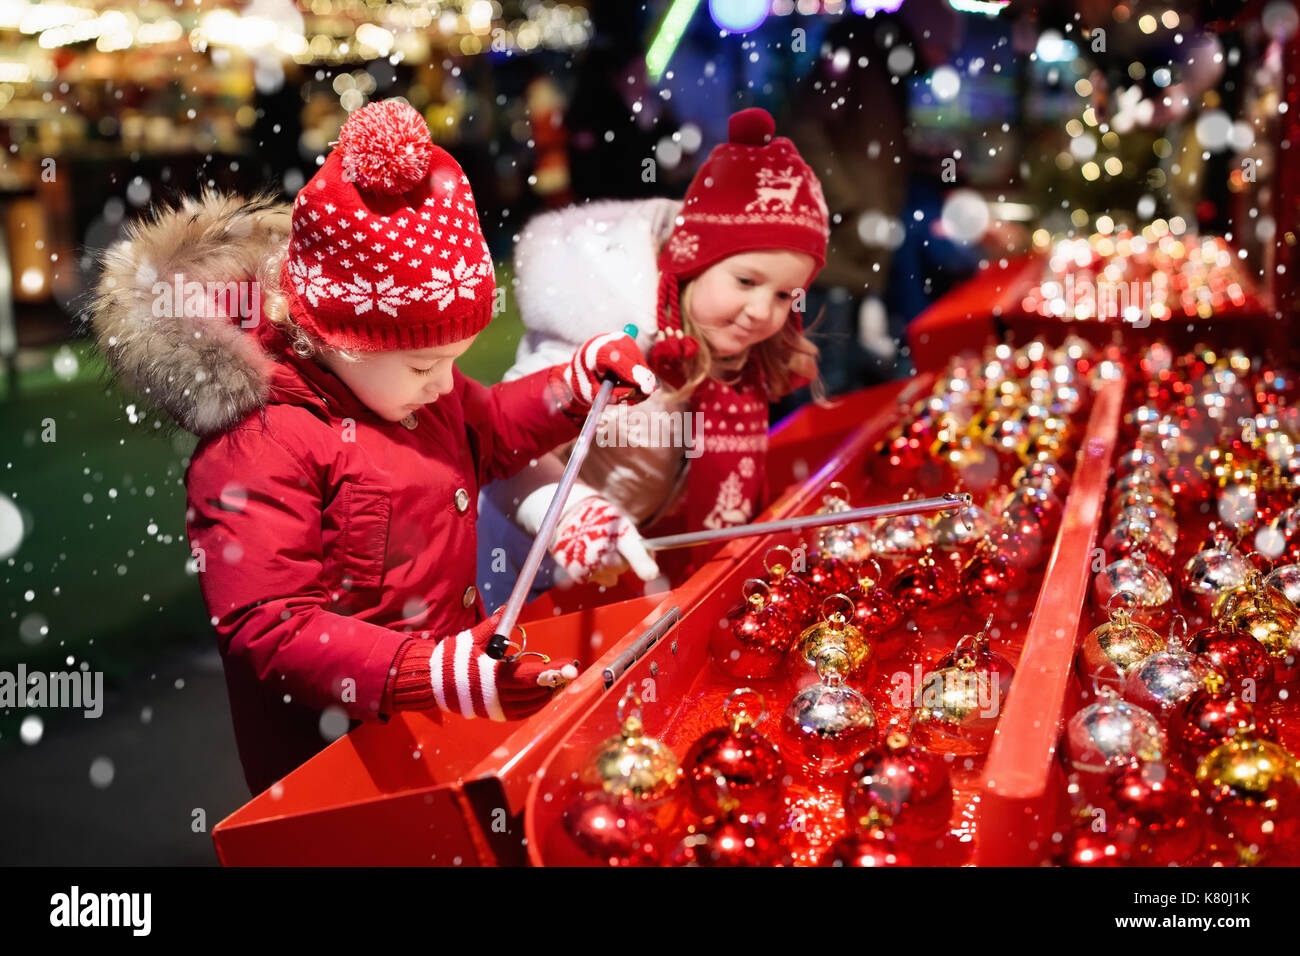 Christmas Shopping Kids Childhood Stock Photos & Christmas Shopping ...